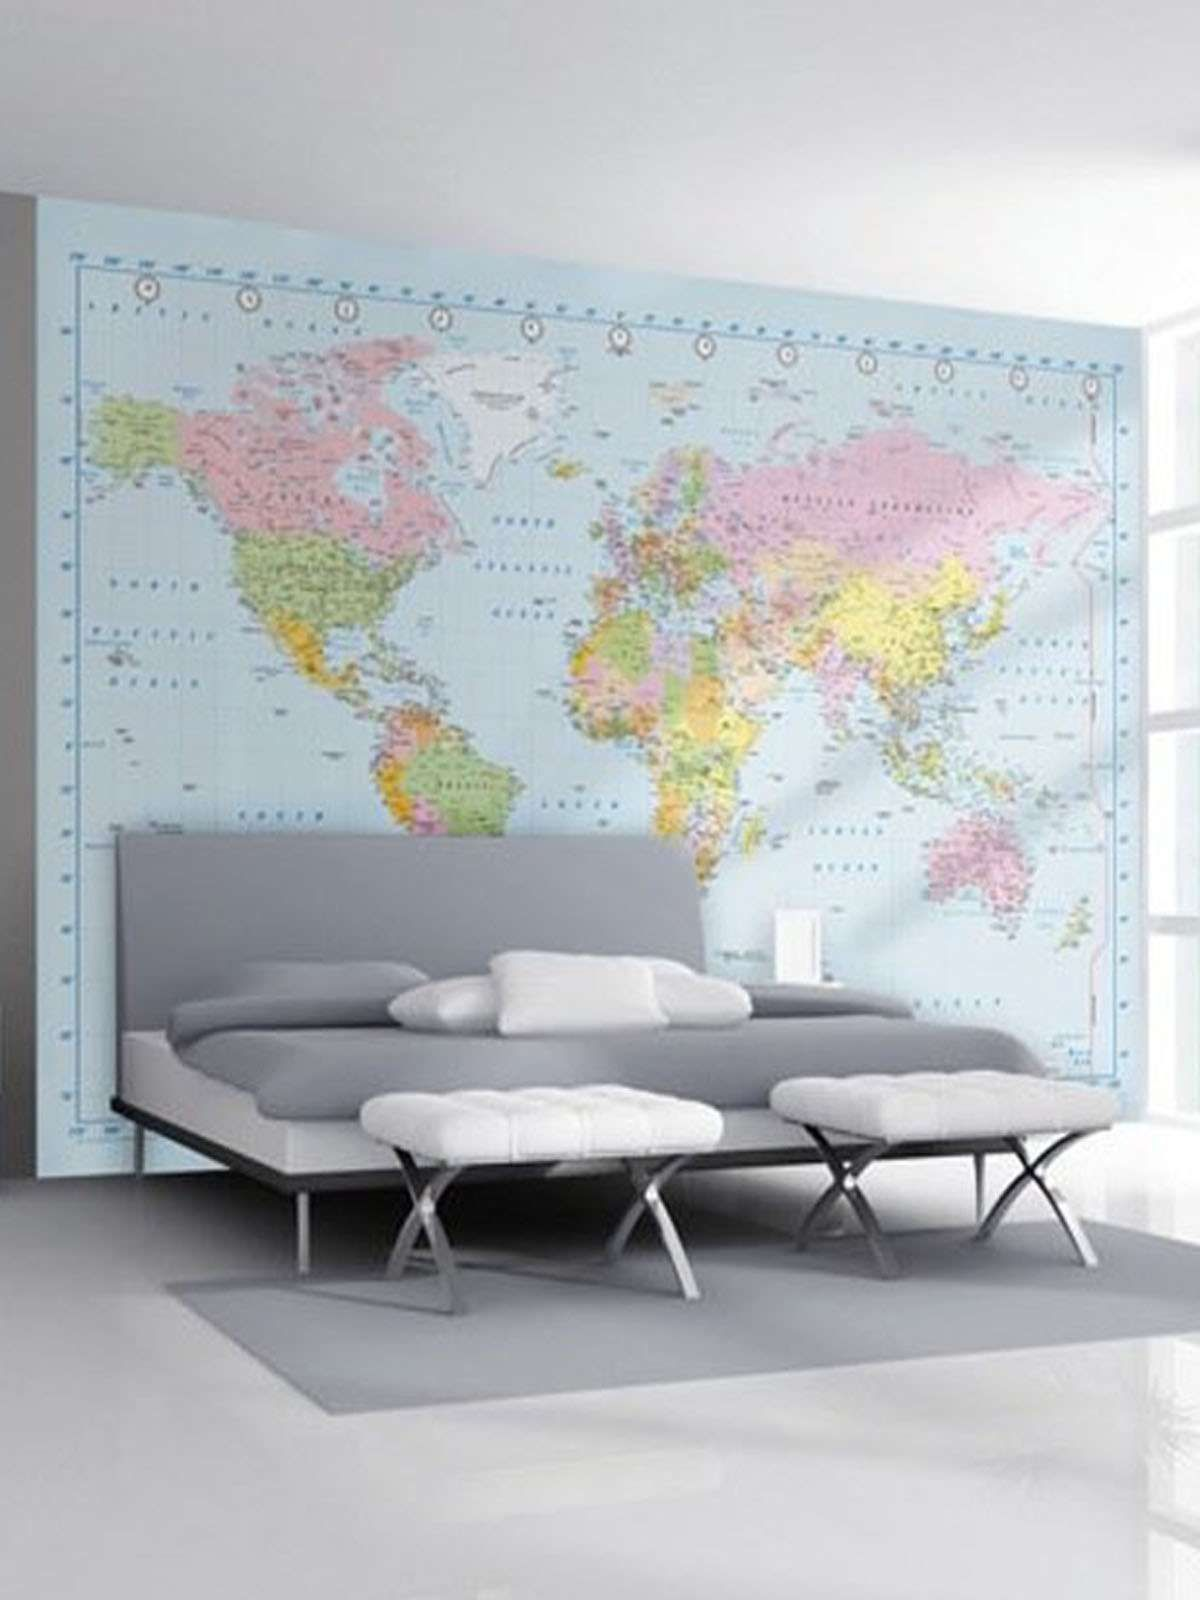 World Map Giant Easy Hang Wall Mural Map Murals World Map Mural World Map Wallpaper